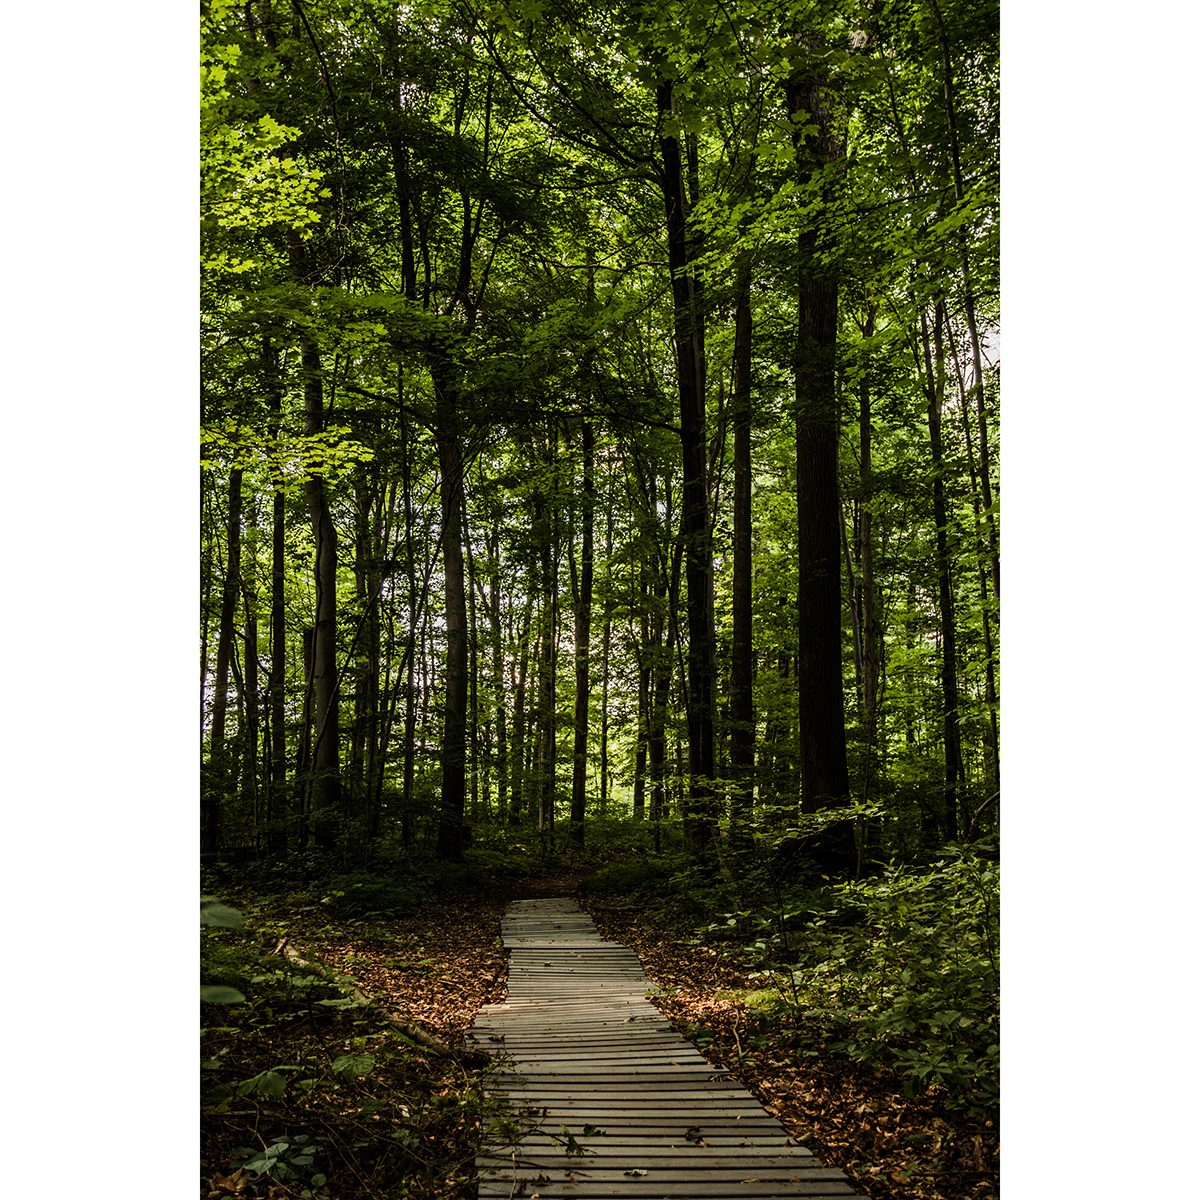 Day trips from Toronto - Guelph Arboretum Trail